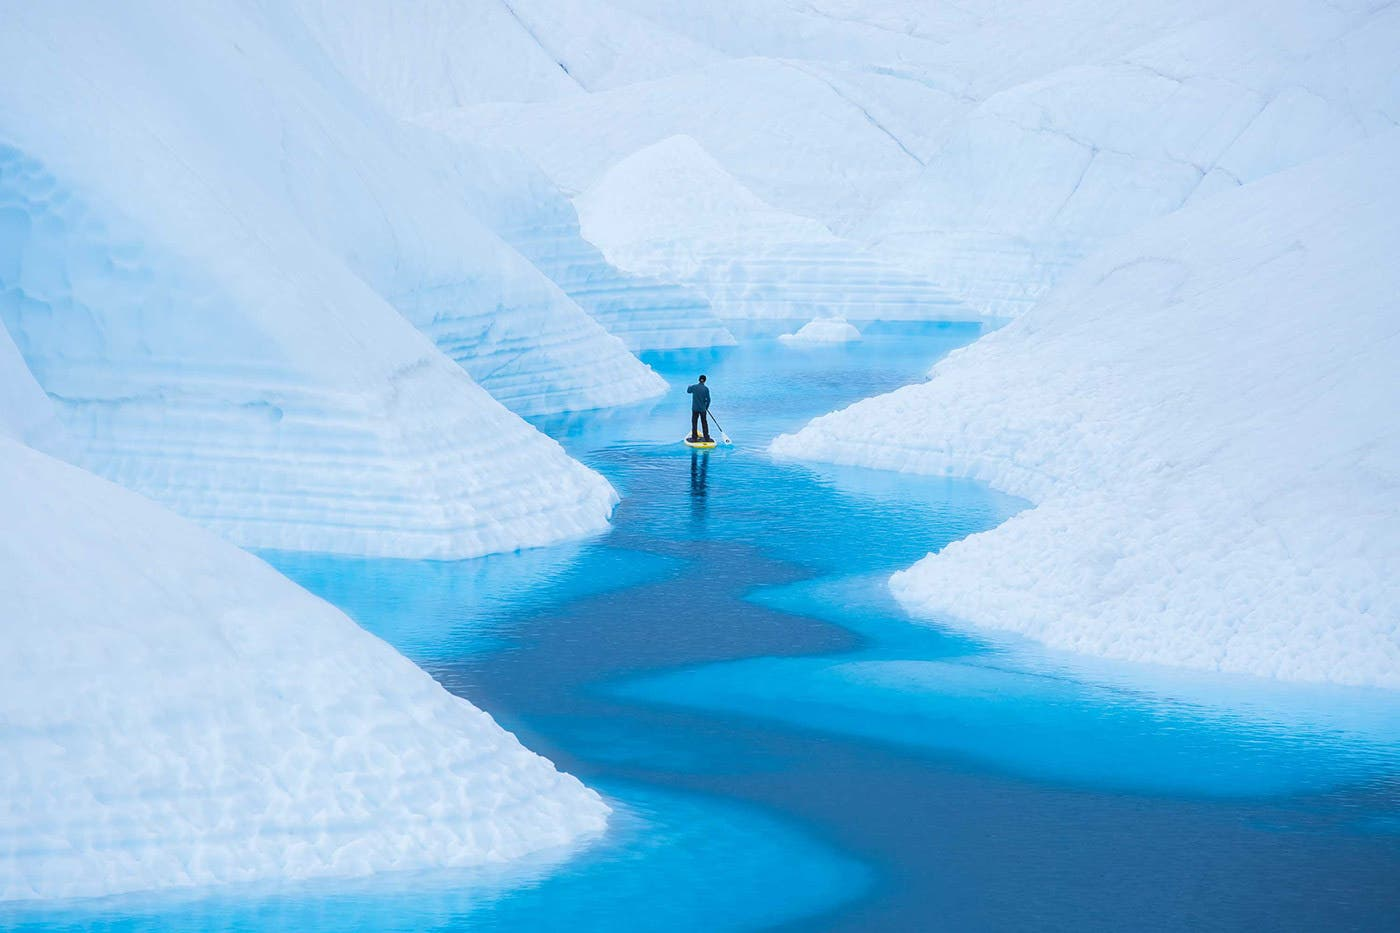 """Paddling Tranquility"" Showcases the Epic Glacier Landscapes of Alaska"